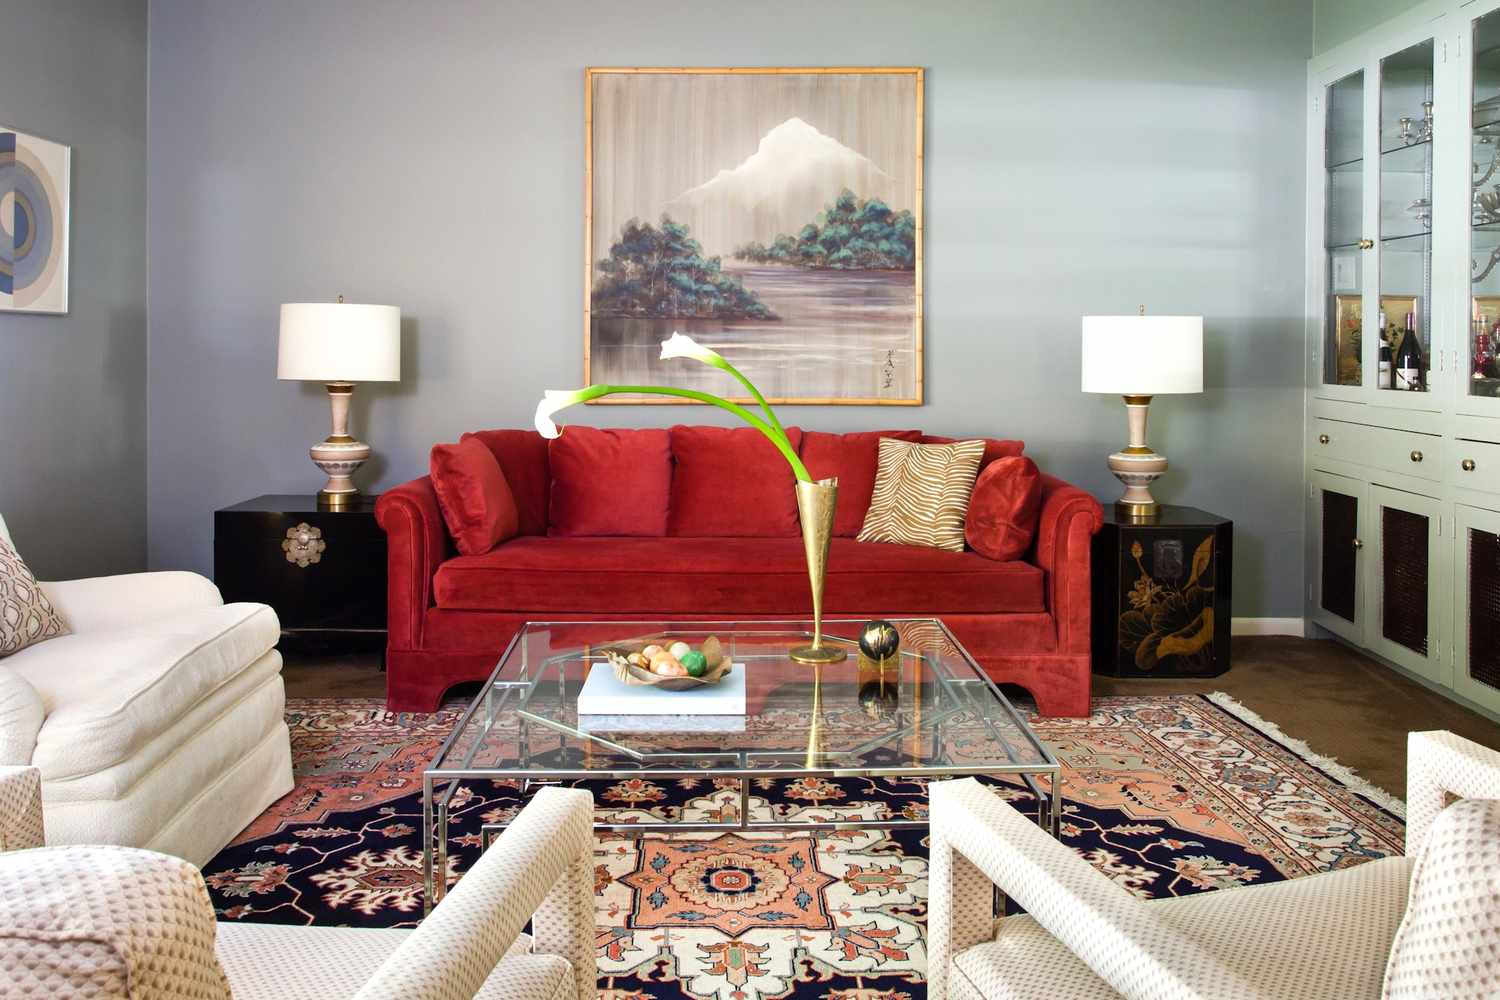 Red and black luxurious sitting room.